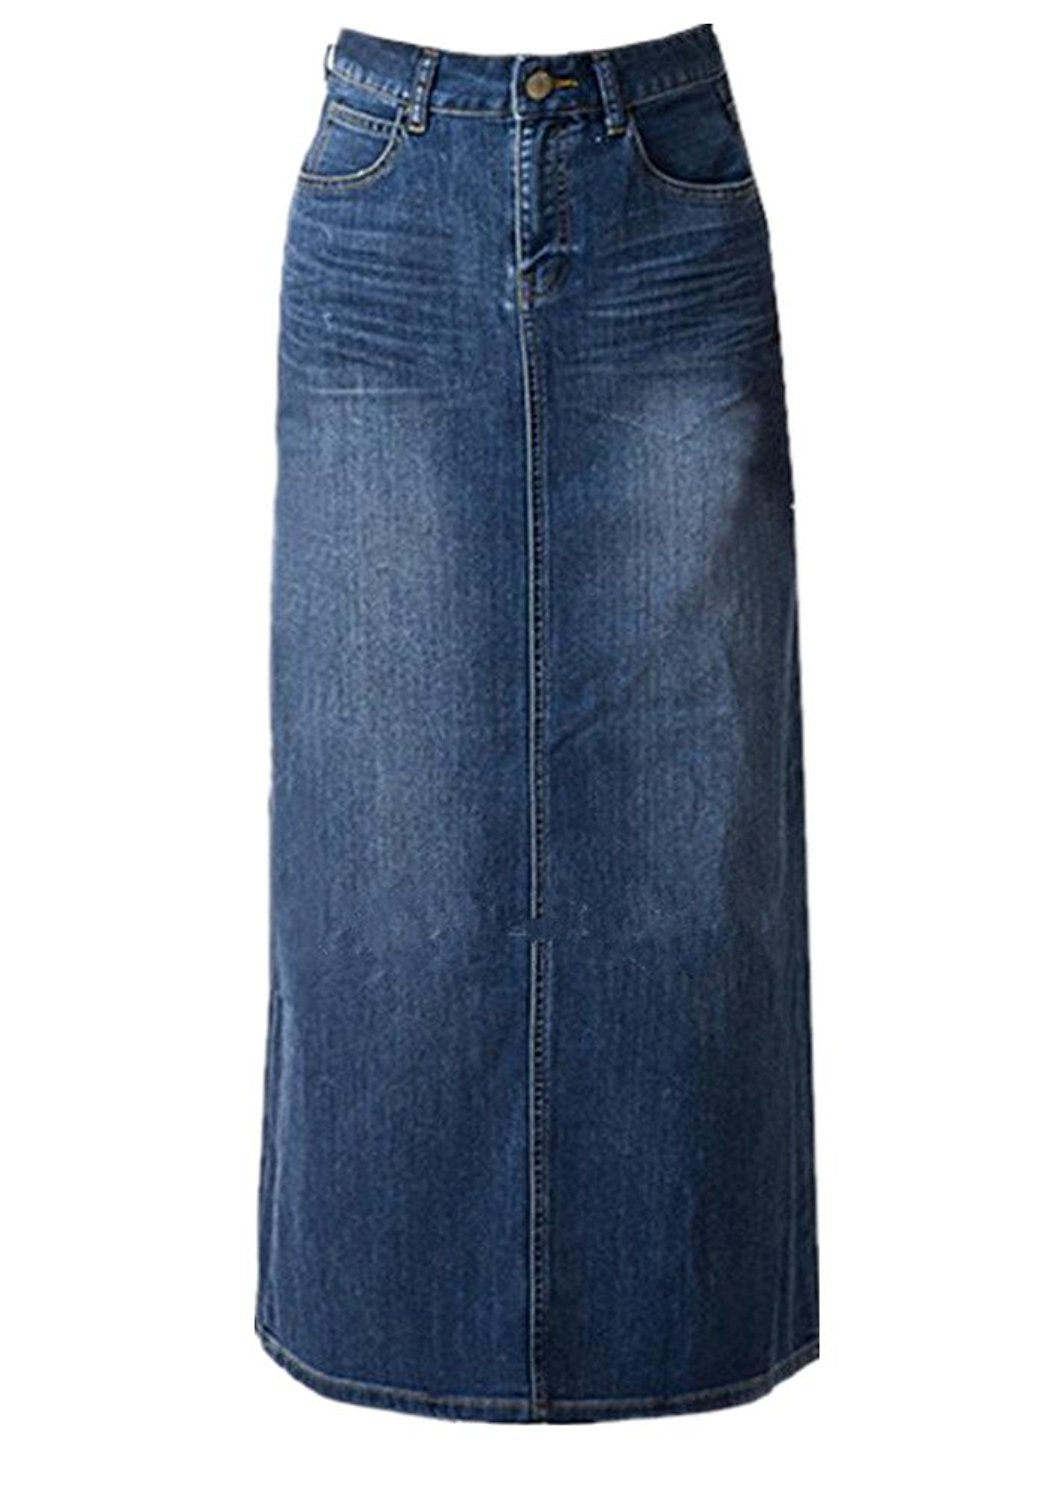 f2d636c3c7f Get Quotations · Women s Maxi Pencil Jean Skirt- High Waisted A-Line Long  Denim Skirts For Ladies